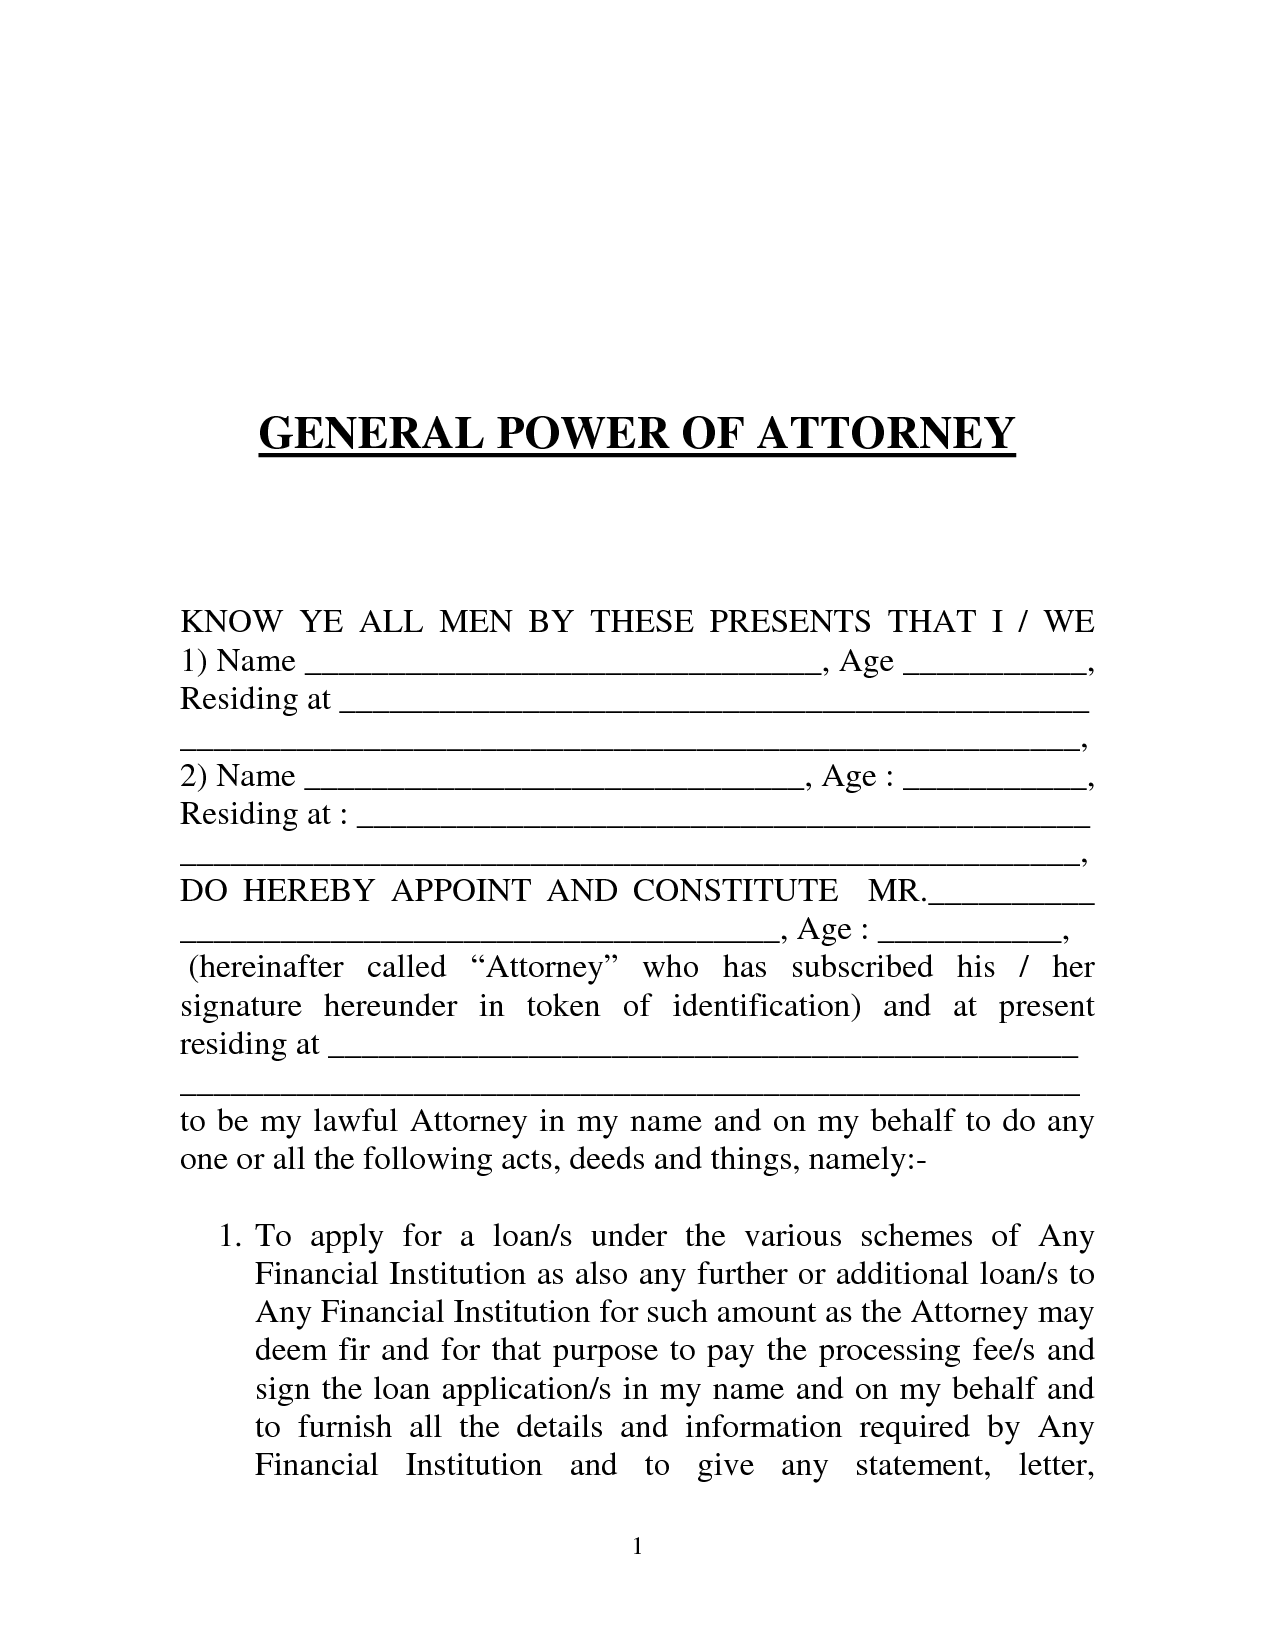 Power Of Atttorney Template  General Power Of Attorney Form India